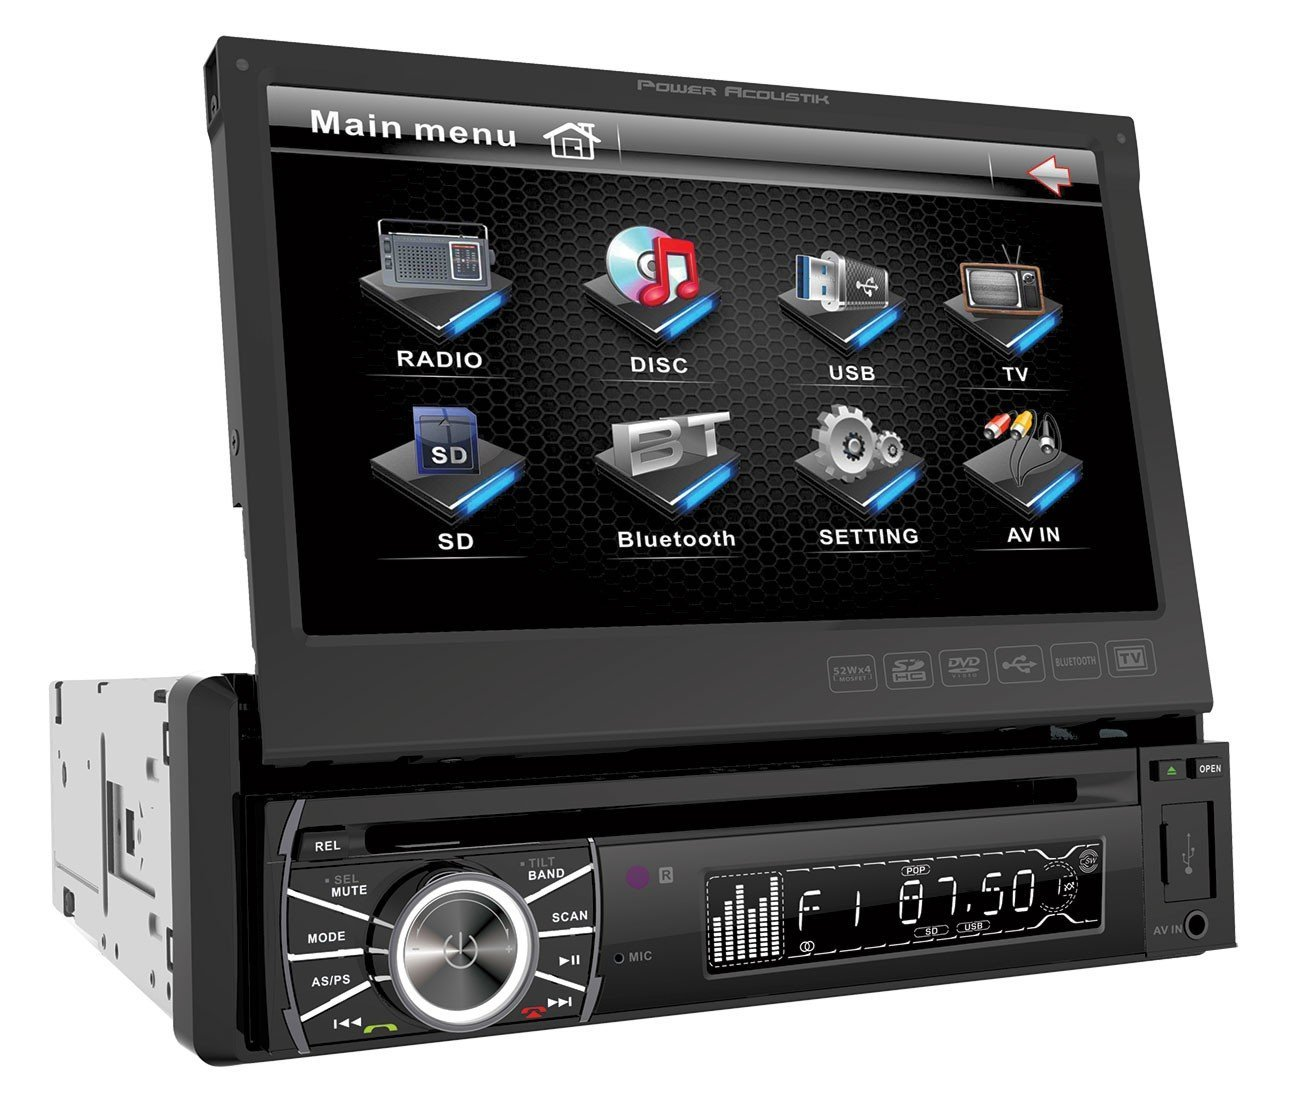 Amazon.com: Power Acoustik PTID-8920B In-Dash DVD AM/FM Receiver with  7-Inch Flip-Out Touchscreen Monitor and USB/SD Input: Power Acoustik: Car  Electronics